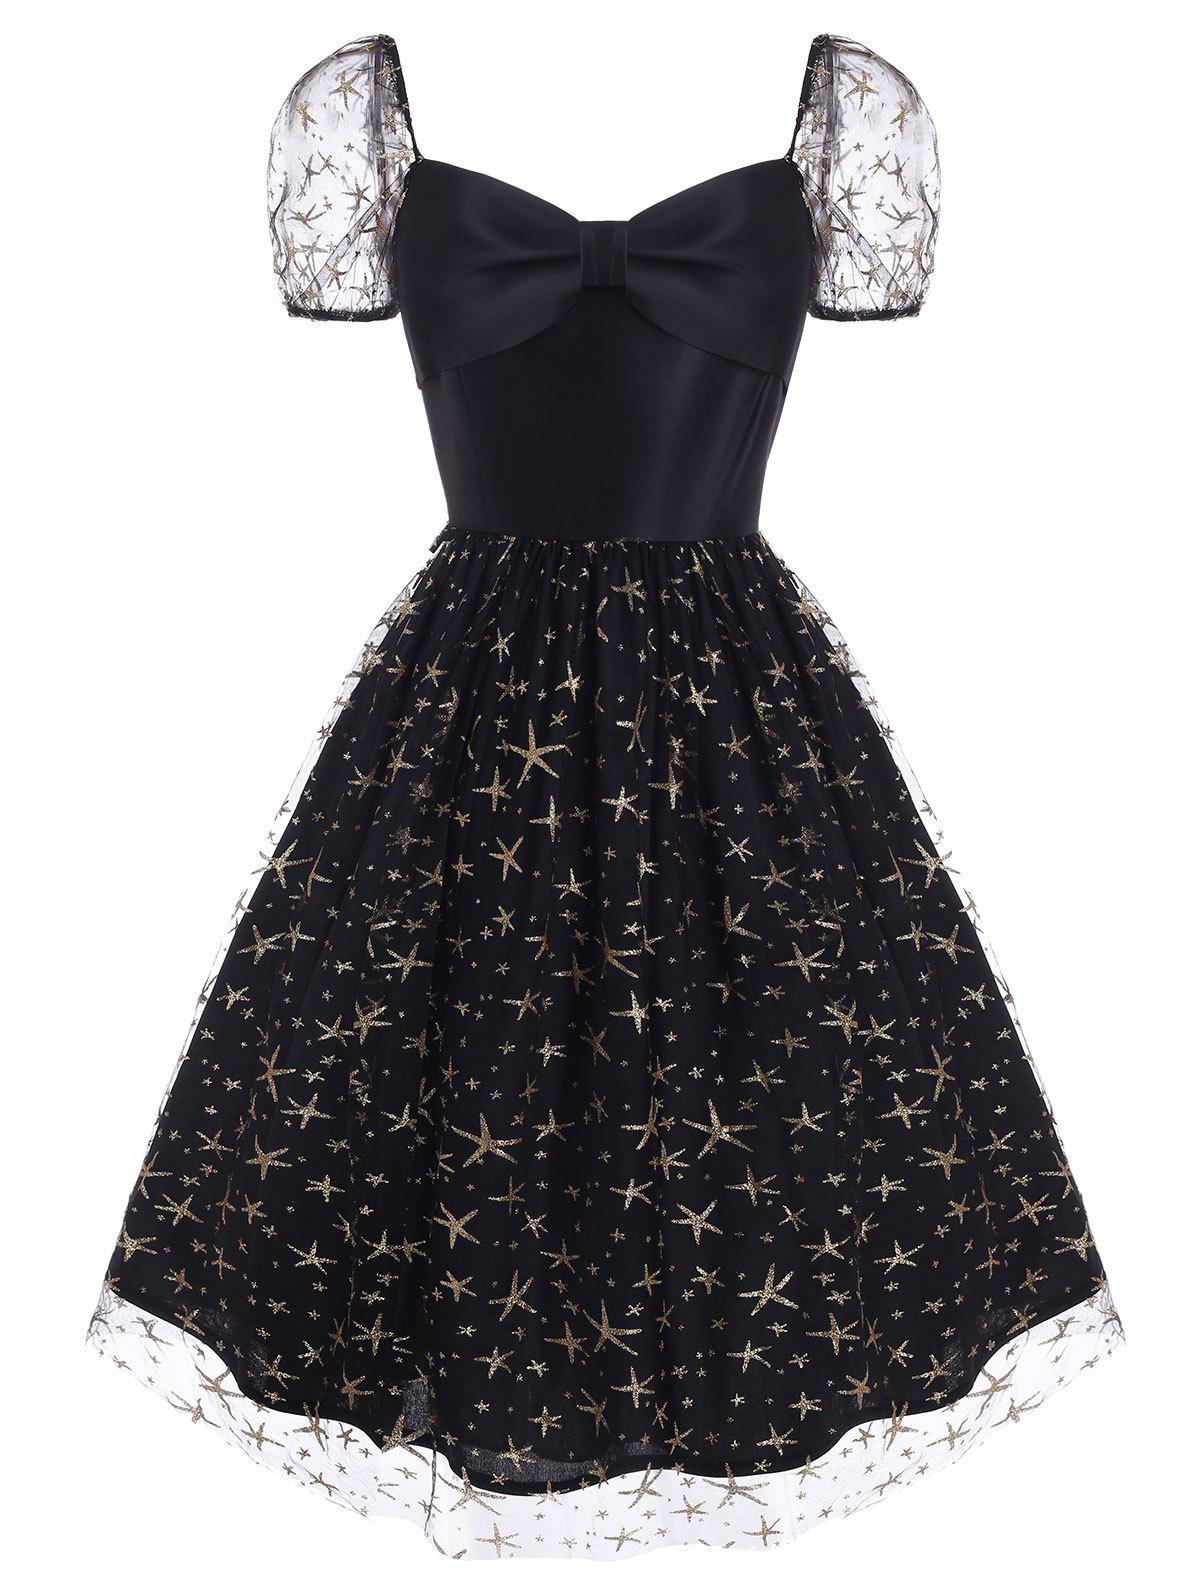 Sparkly Star Lace Insert Bowknot Sweetheart Dress - BLACK L